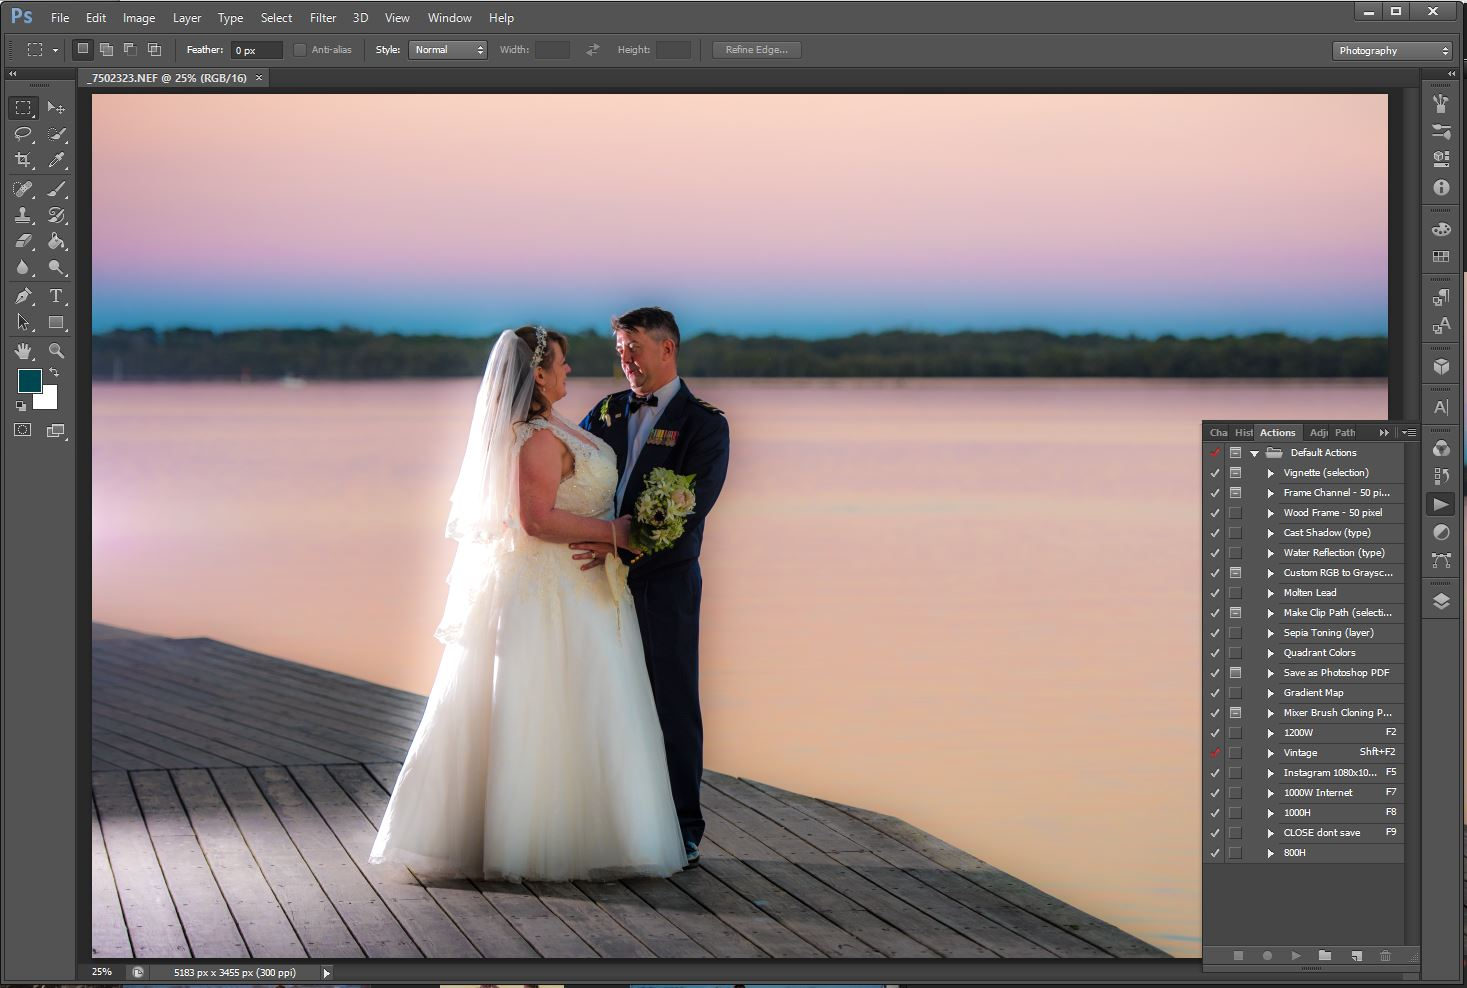 Workflow for Post-Processing RAW Images in Photoshop